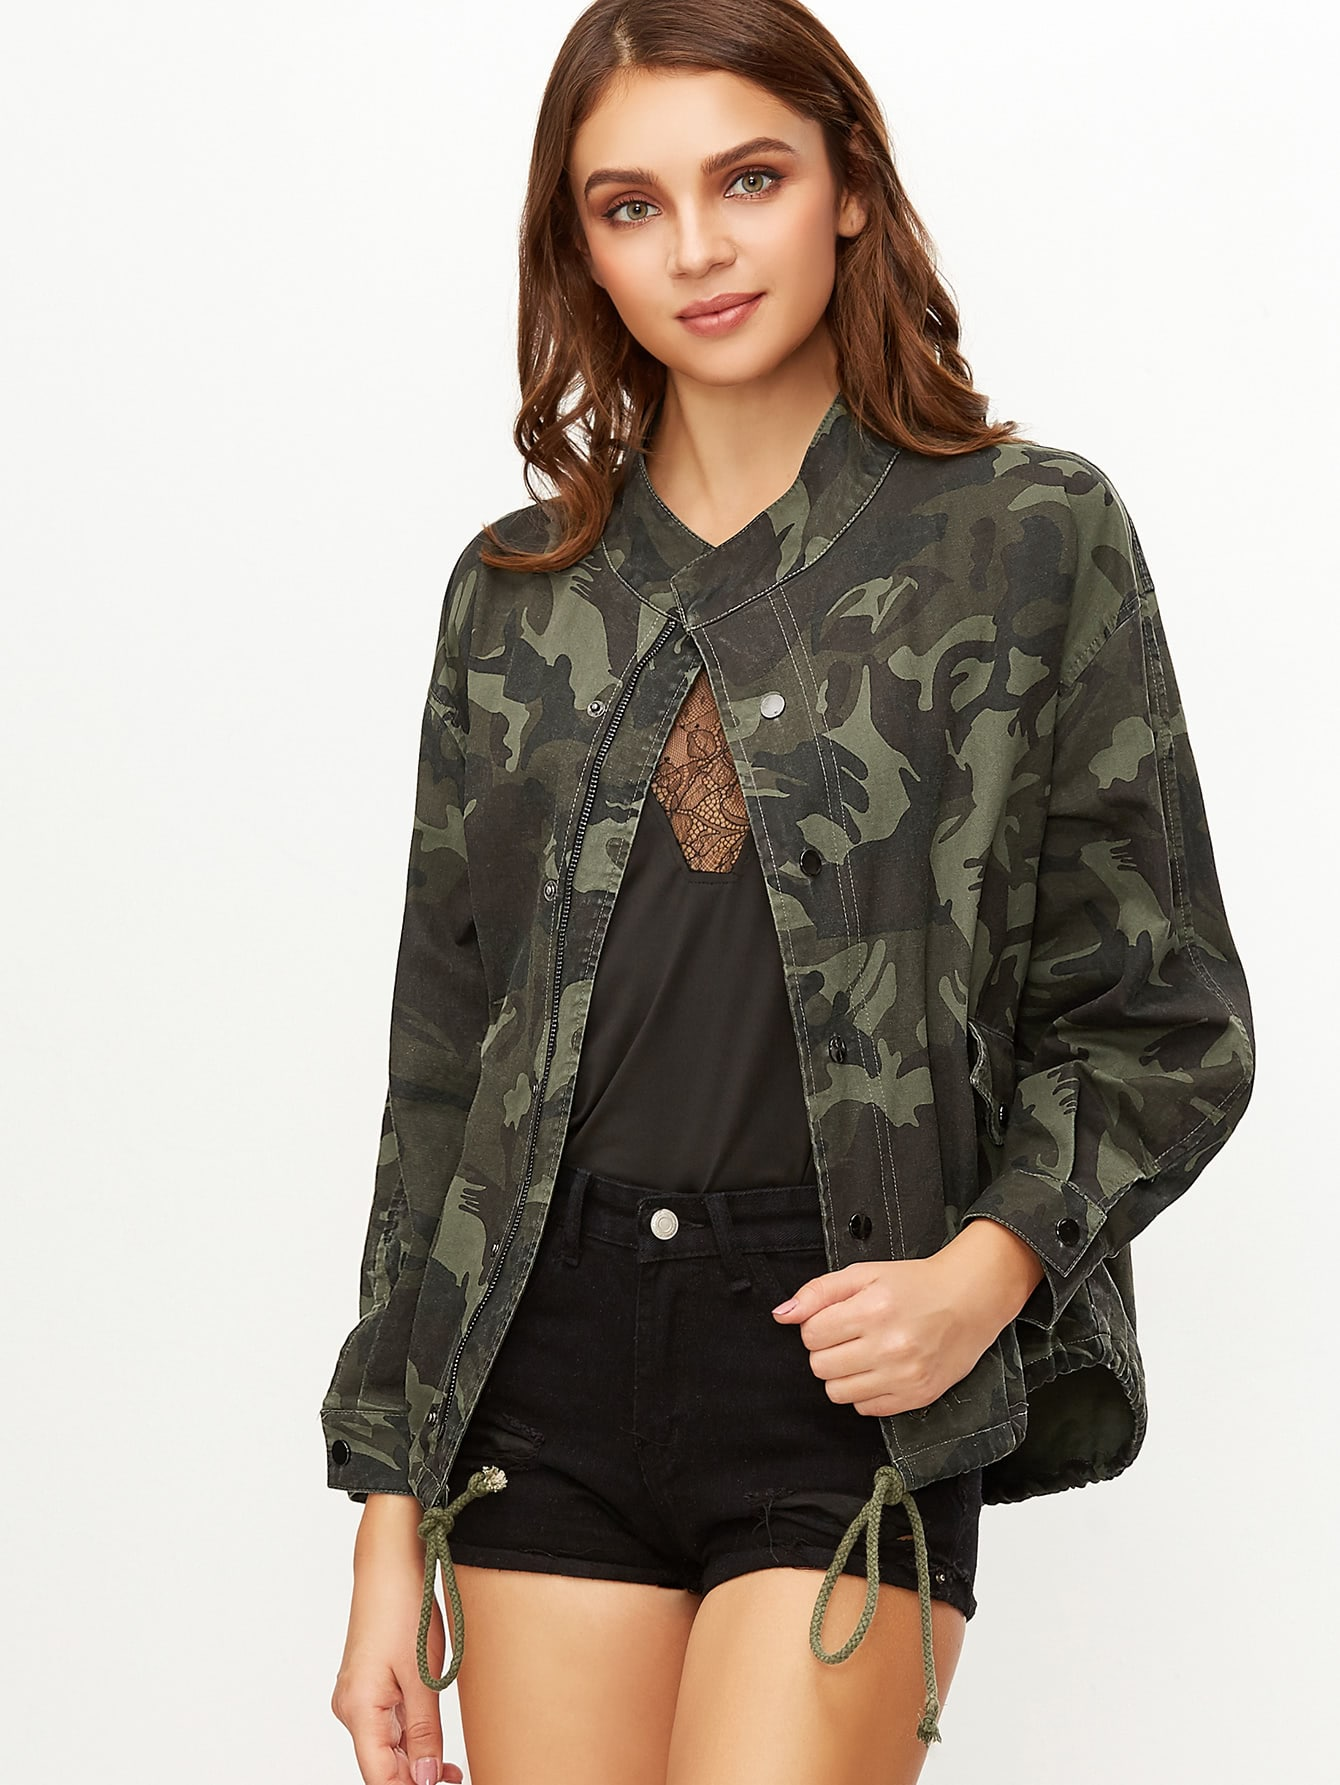 Olive Green Camo Print Drawstring Hem Zip Up JacketOlive Green Camo Print Drawstring Hem Zip Up Jacket<br><br>color: Green<br>size: L,M,S,XS